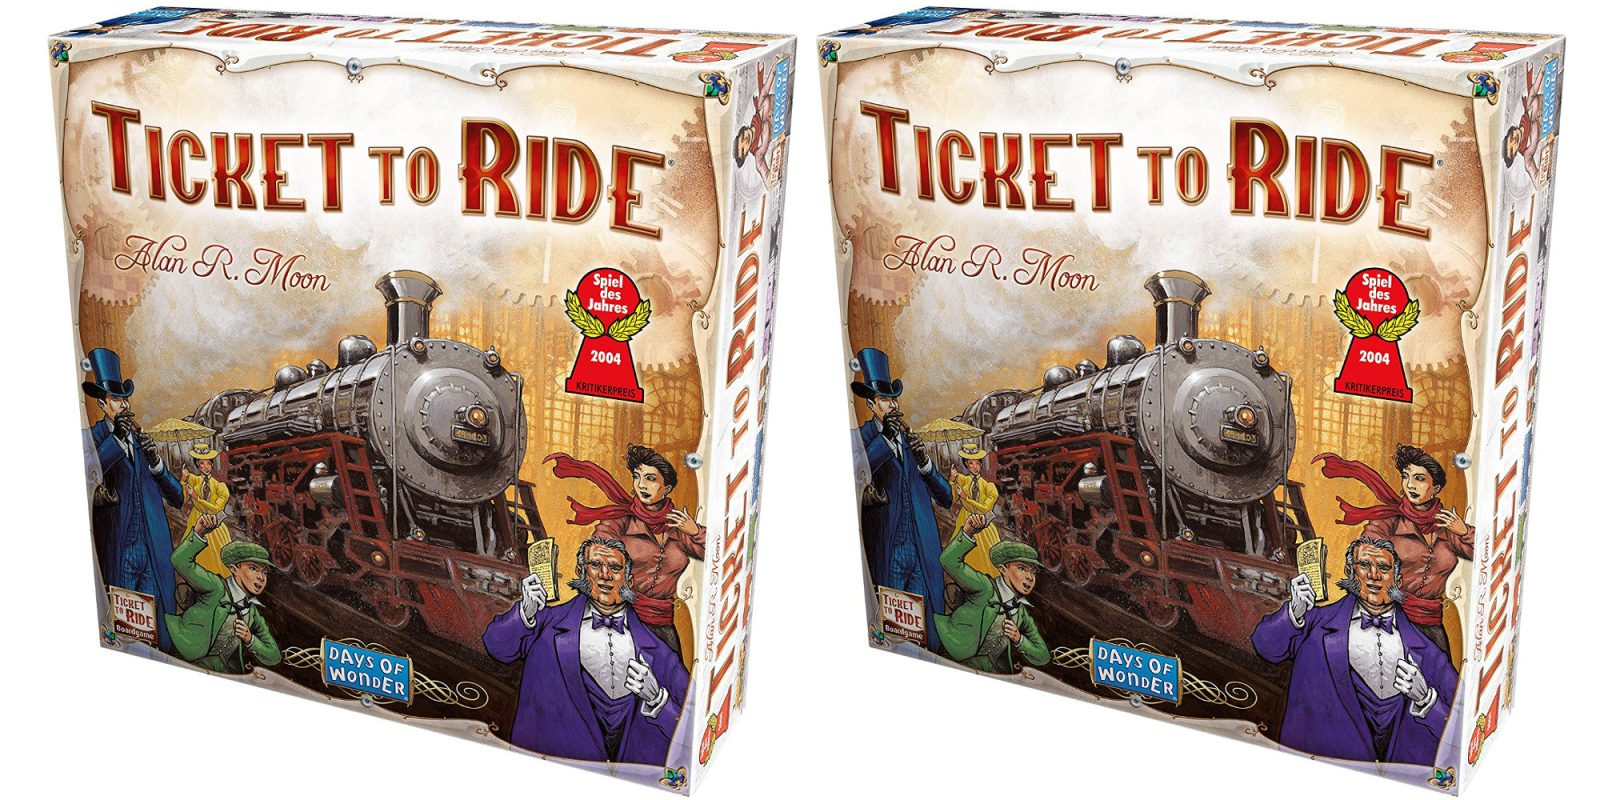 The classic Ticket to Ride board game hits the Amazon low at $20 (Reg. $45)